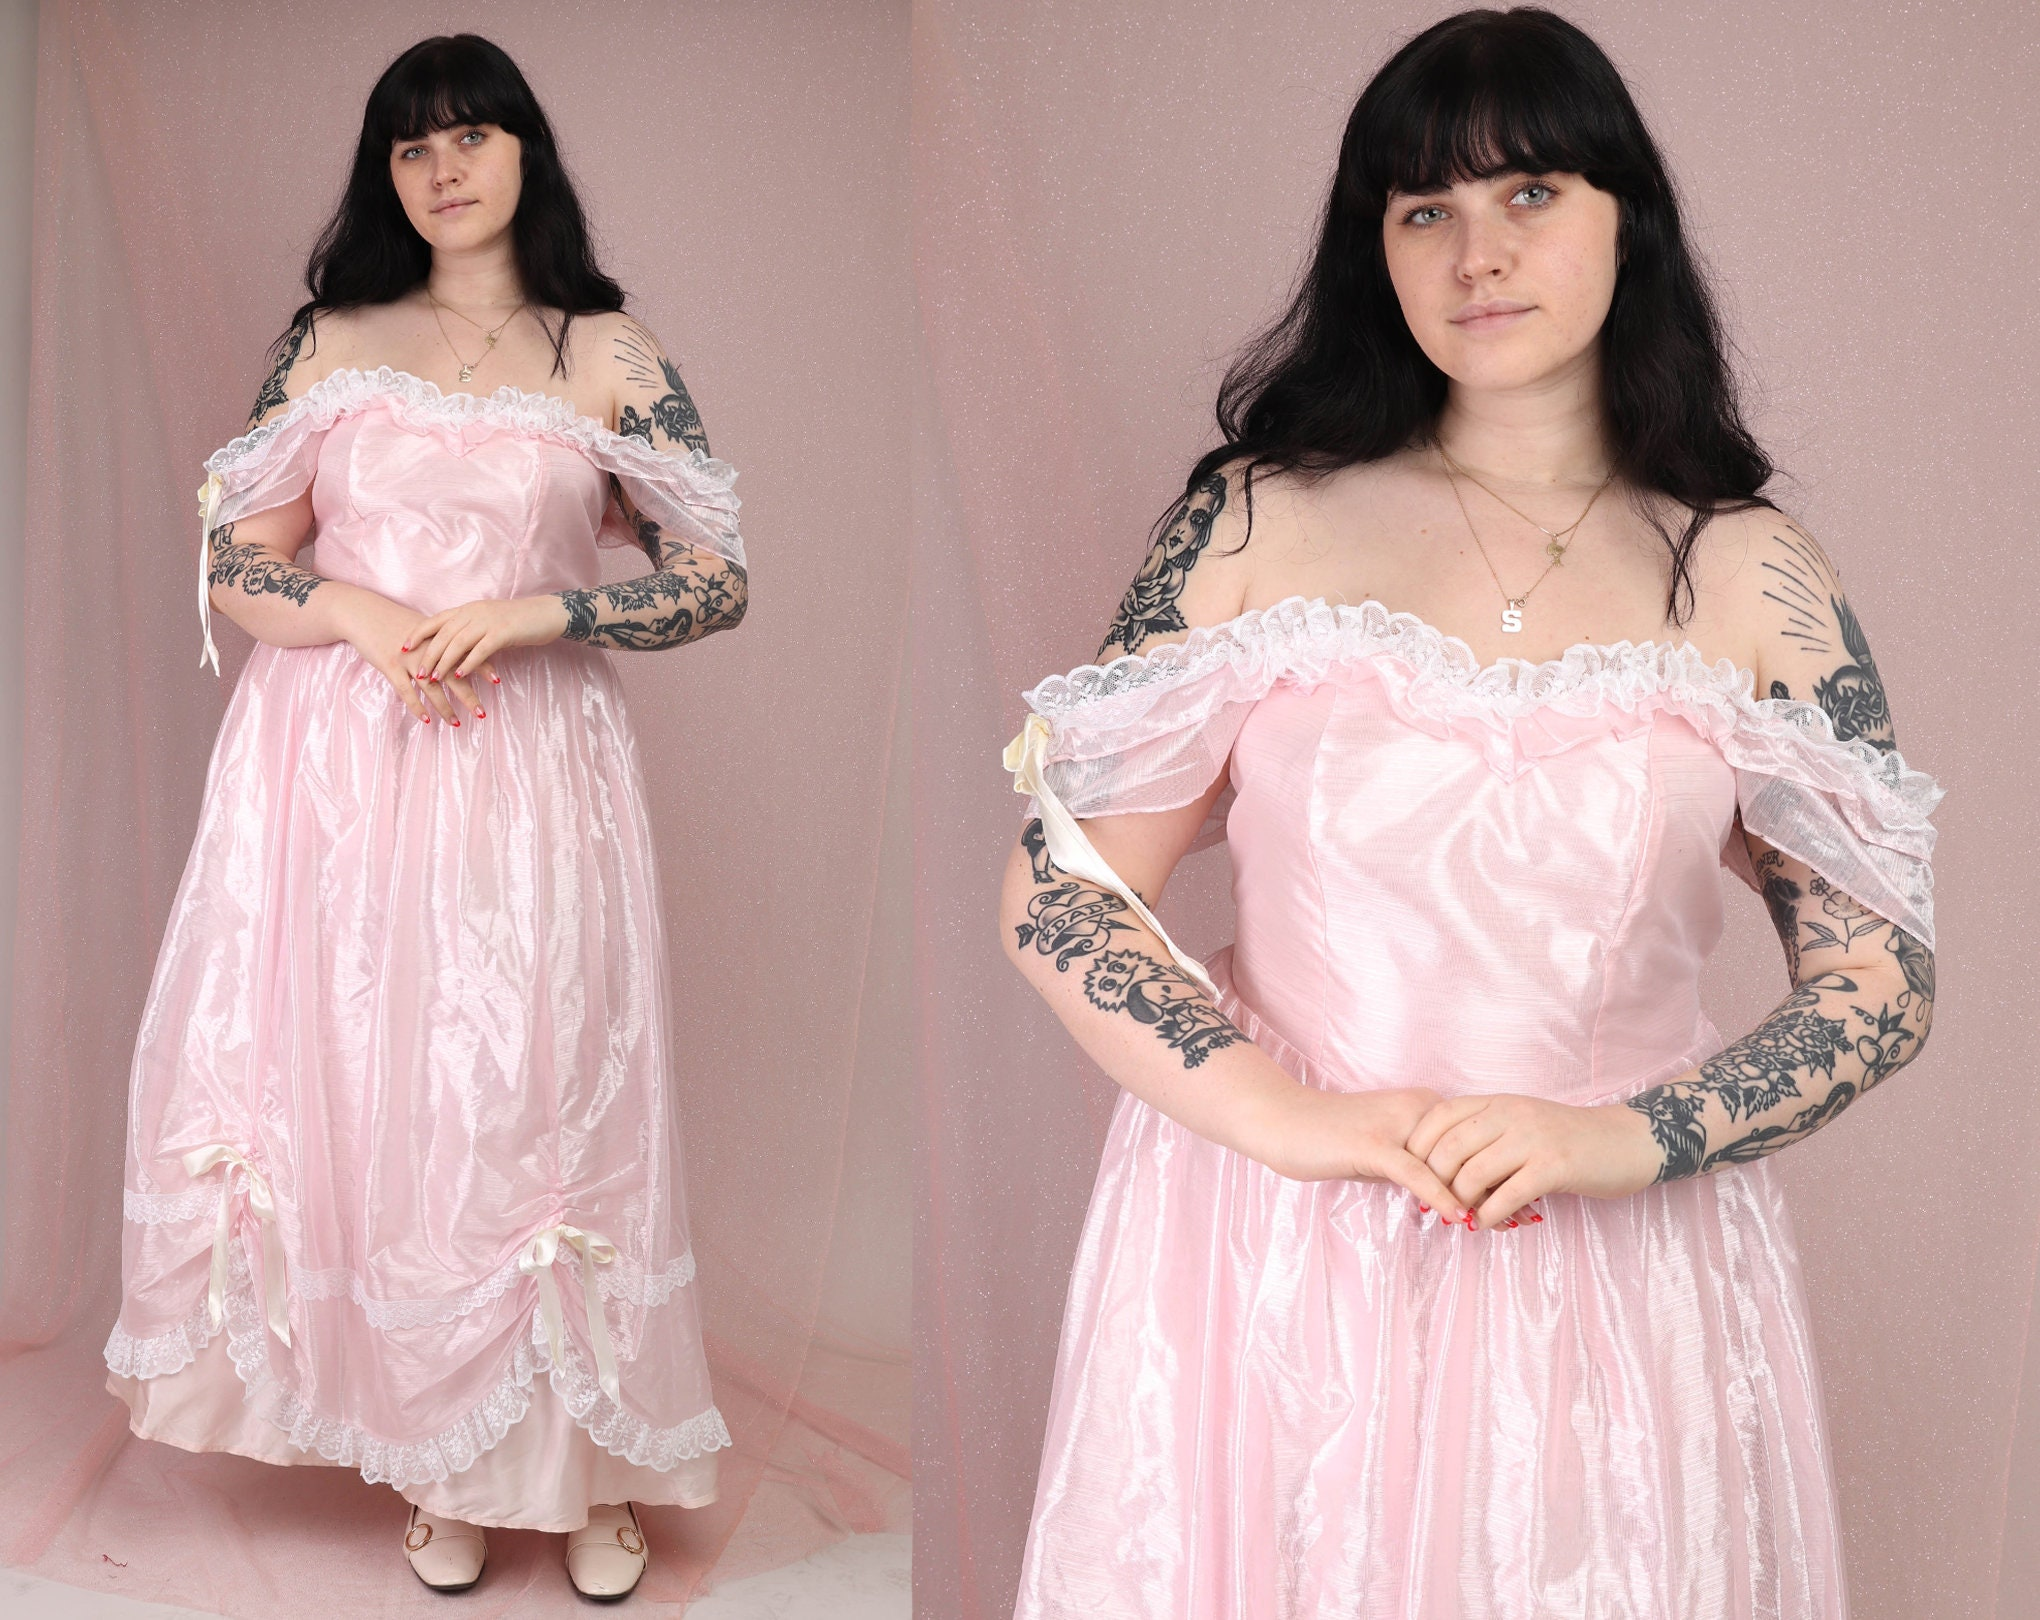 80s Dresses | Casual to Party Dresses 80S Pink Organza Dress XlRomantic Off The Shoulder Renaissance Formal Prom Cocktail Pink Satin Lace Extra Large 1980S $25.99 AT vintagedancer.com